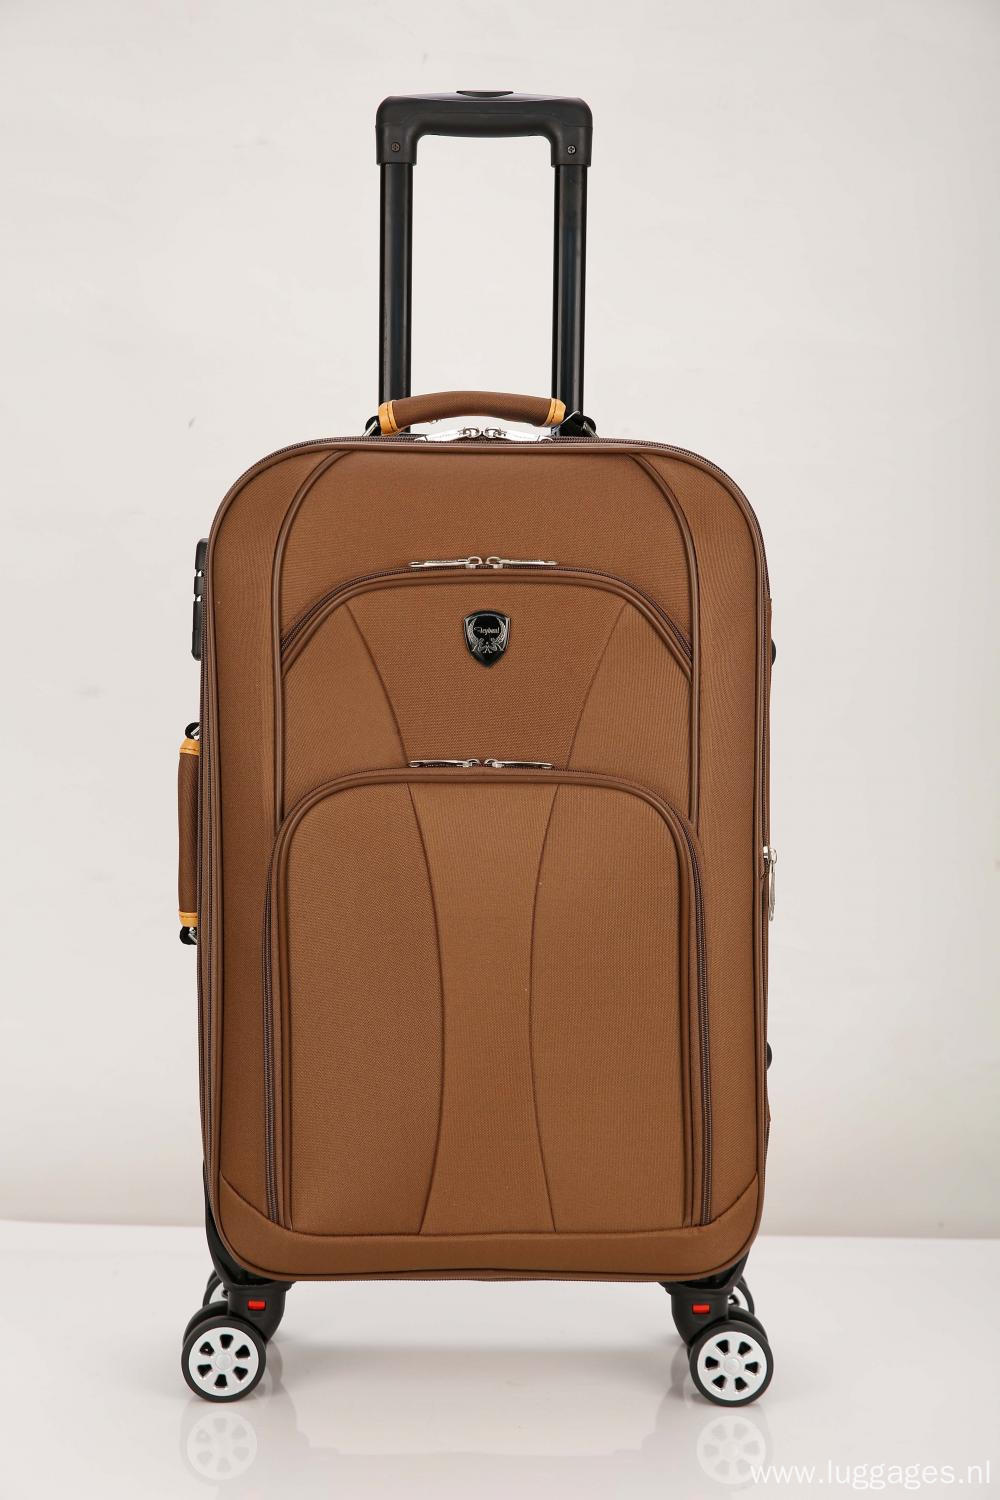 Double front pockets fabric Trolley Luggage